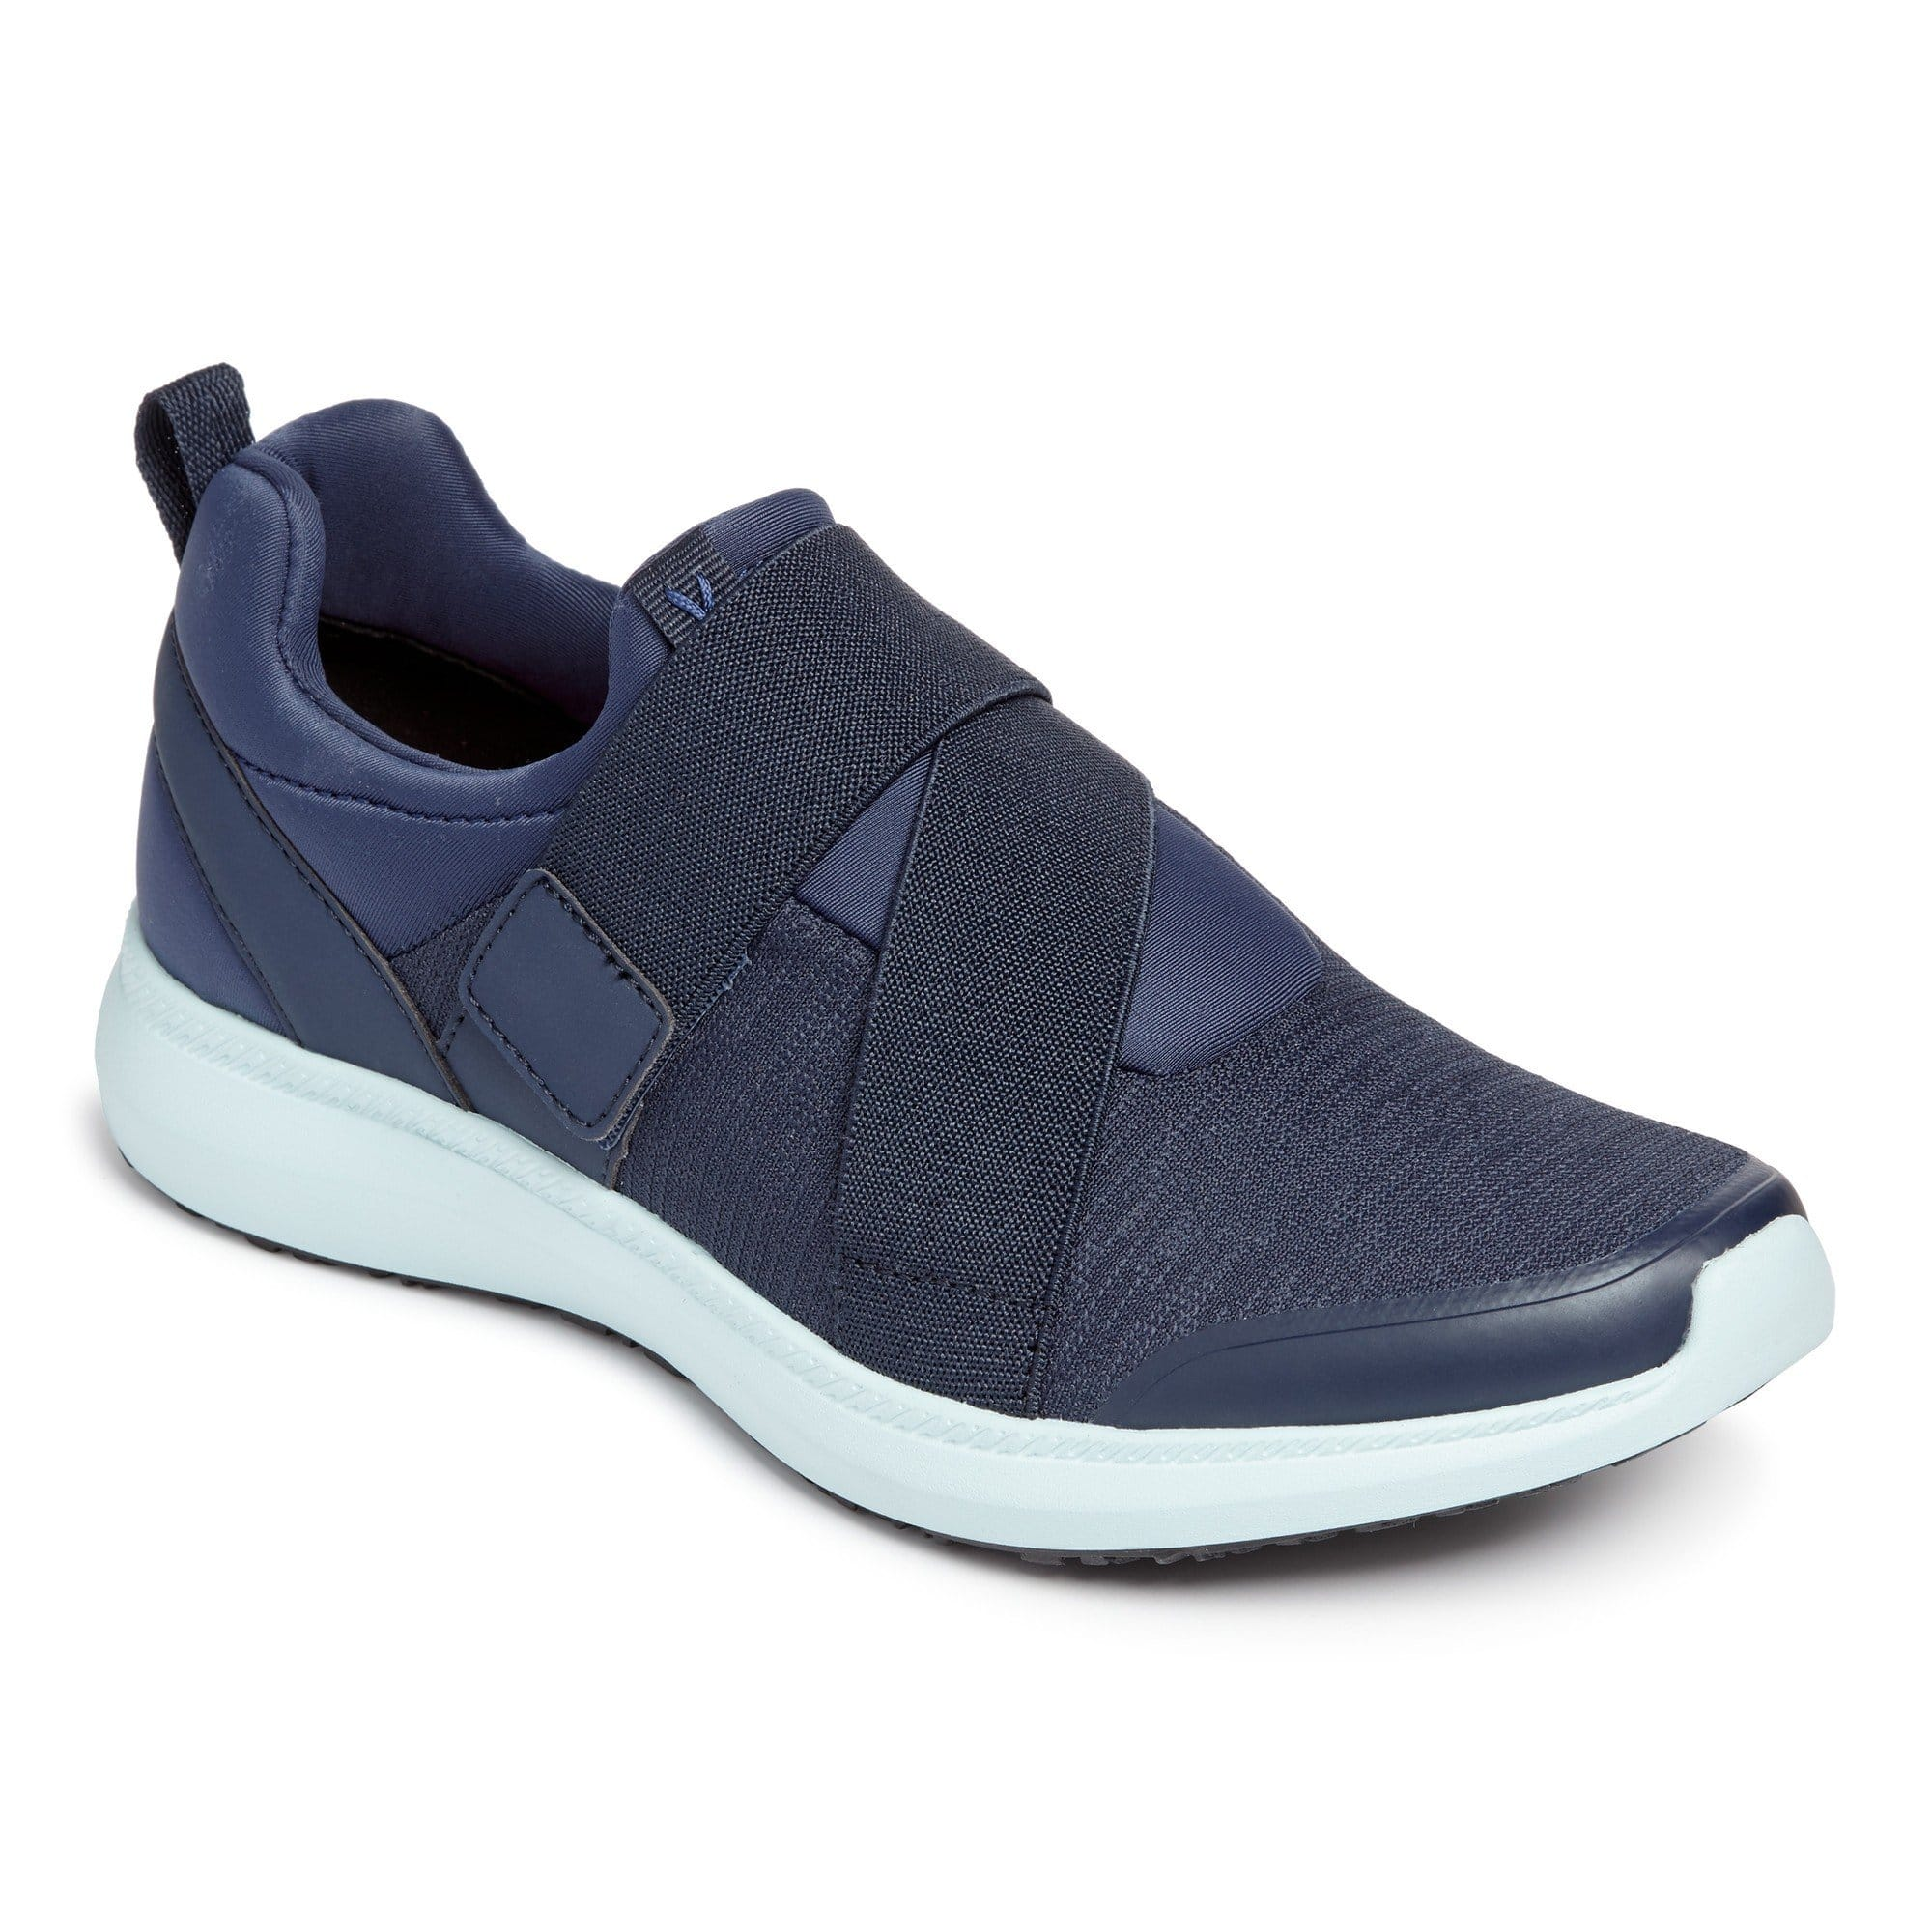 Vionic Shoes 50% off for Nurses: Women's Avery Pro Leather, Marlene Pro Slip on Sneaker or Avery Pro Suede $65 + More & Free Shipping